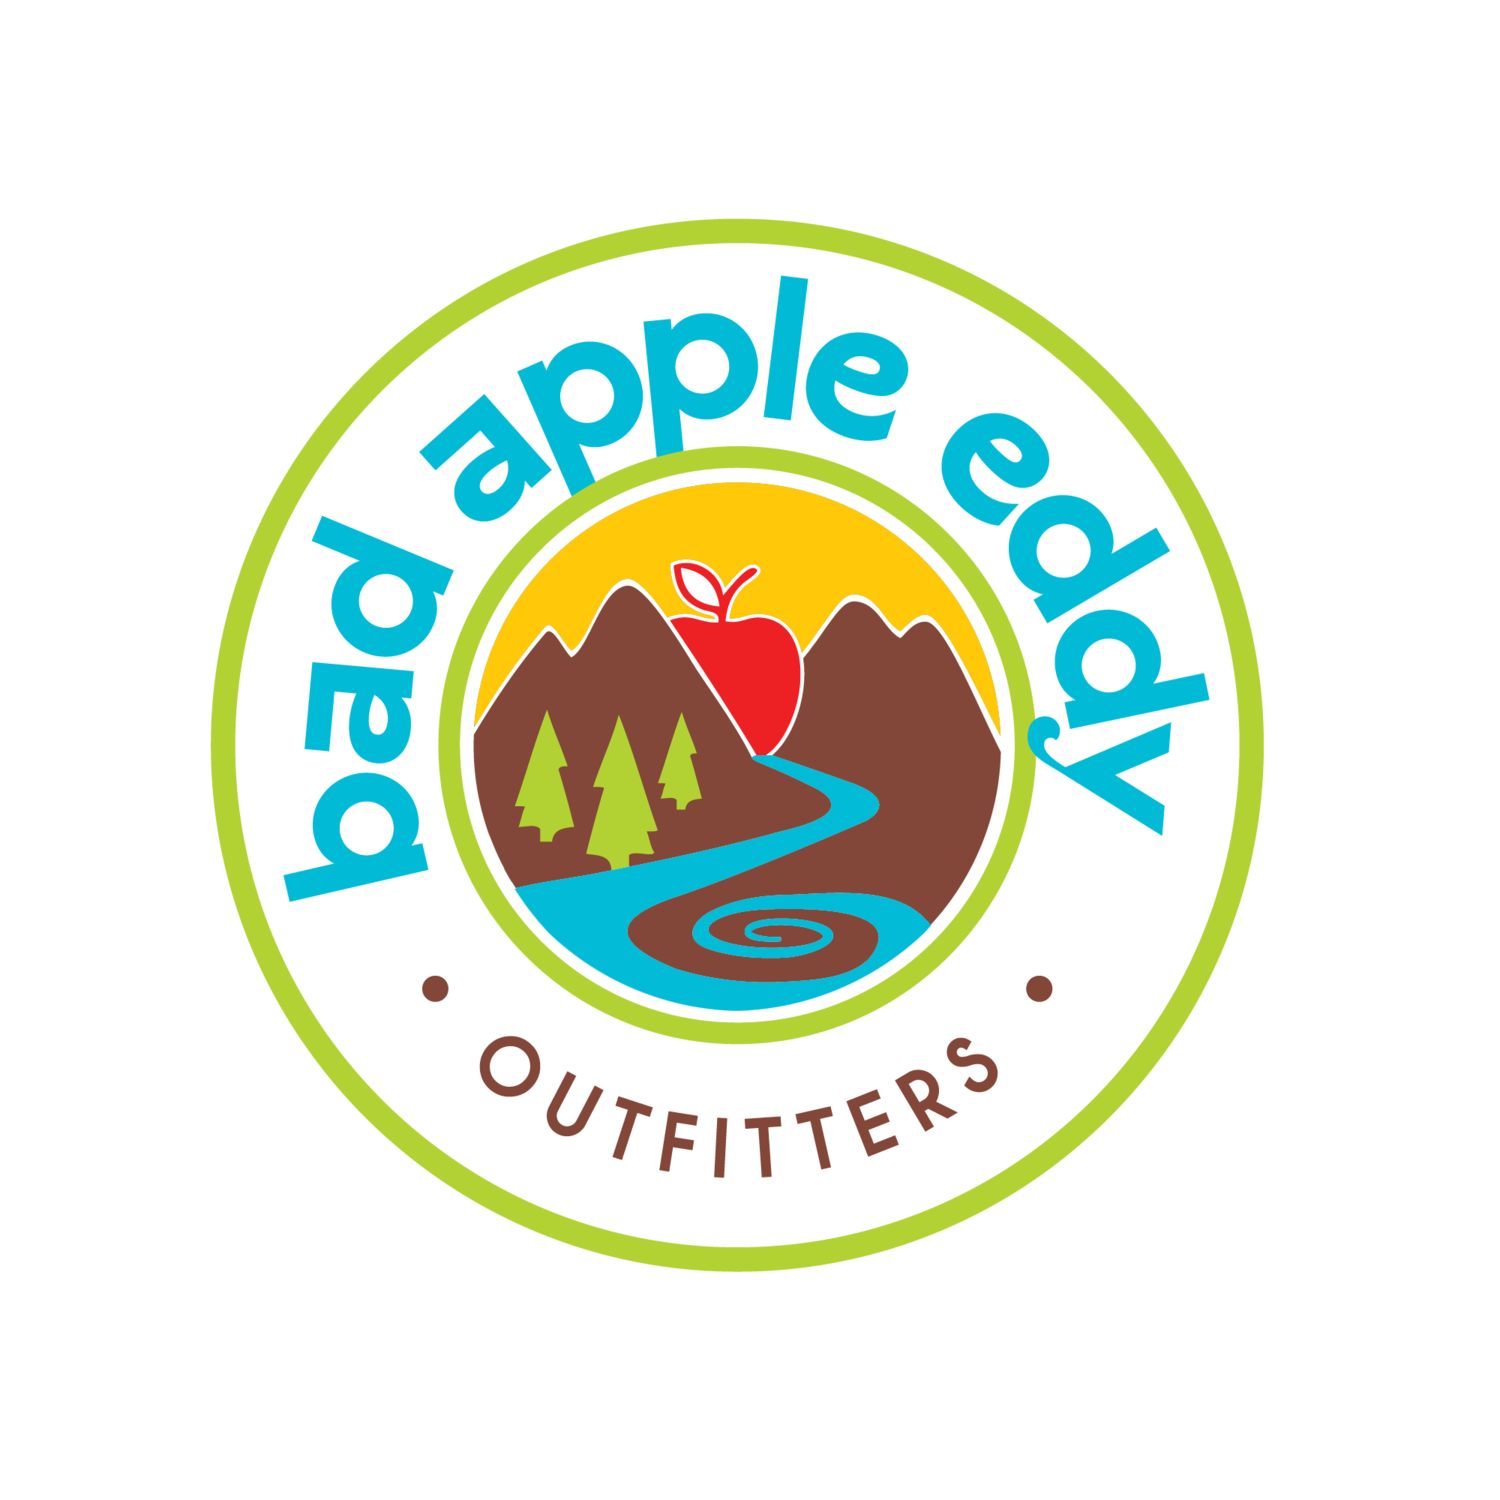 Bad Apple Eddy Outfitters